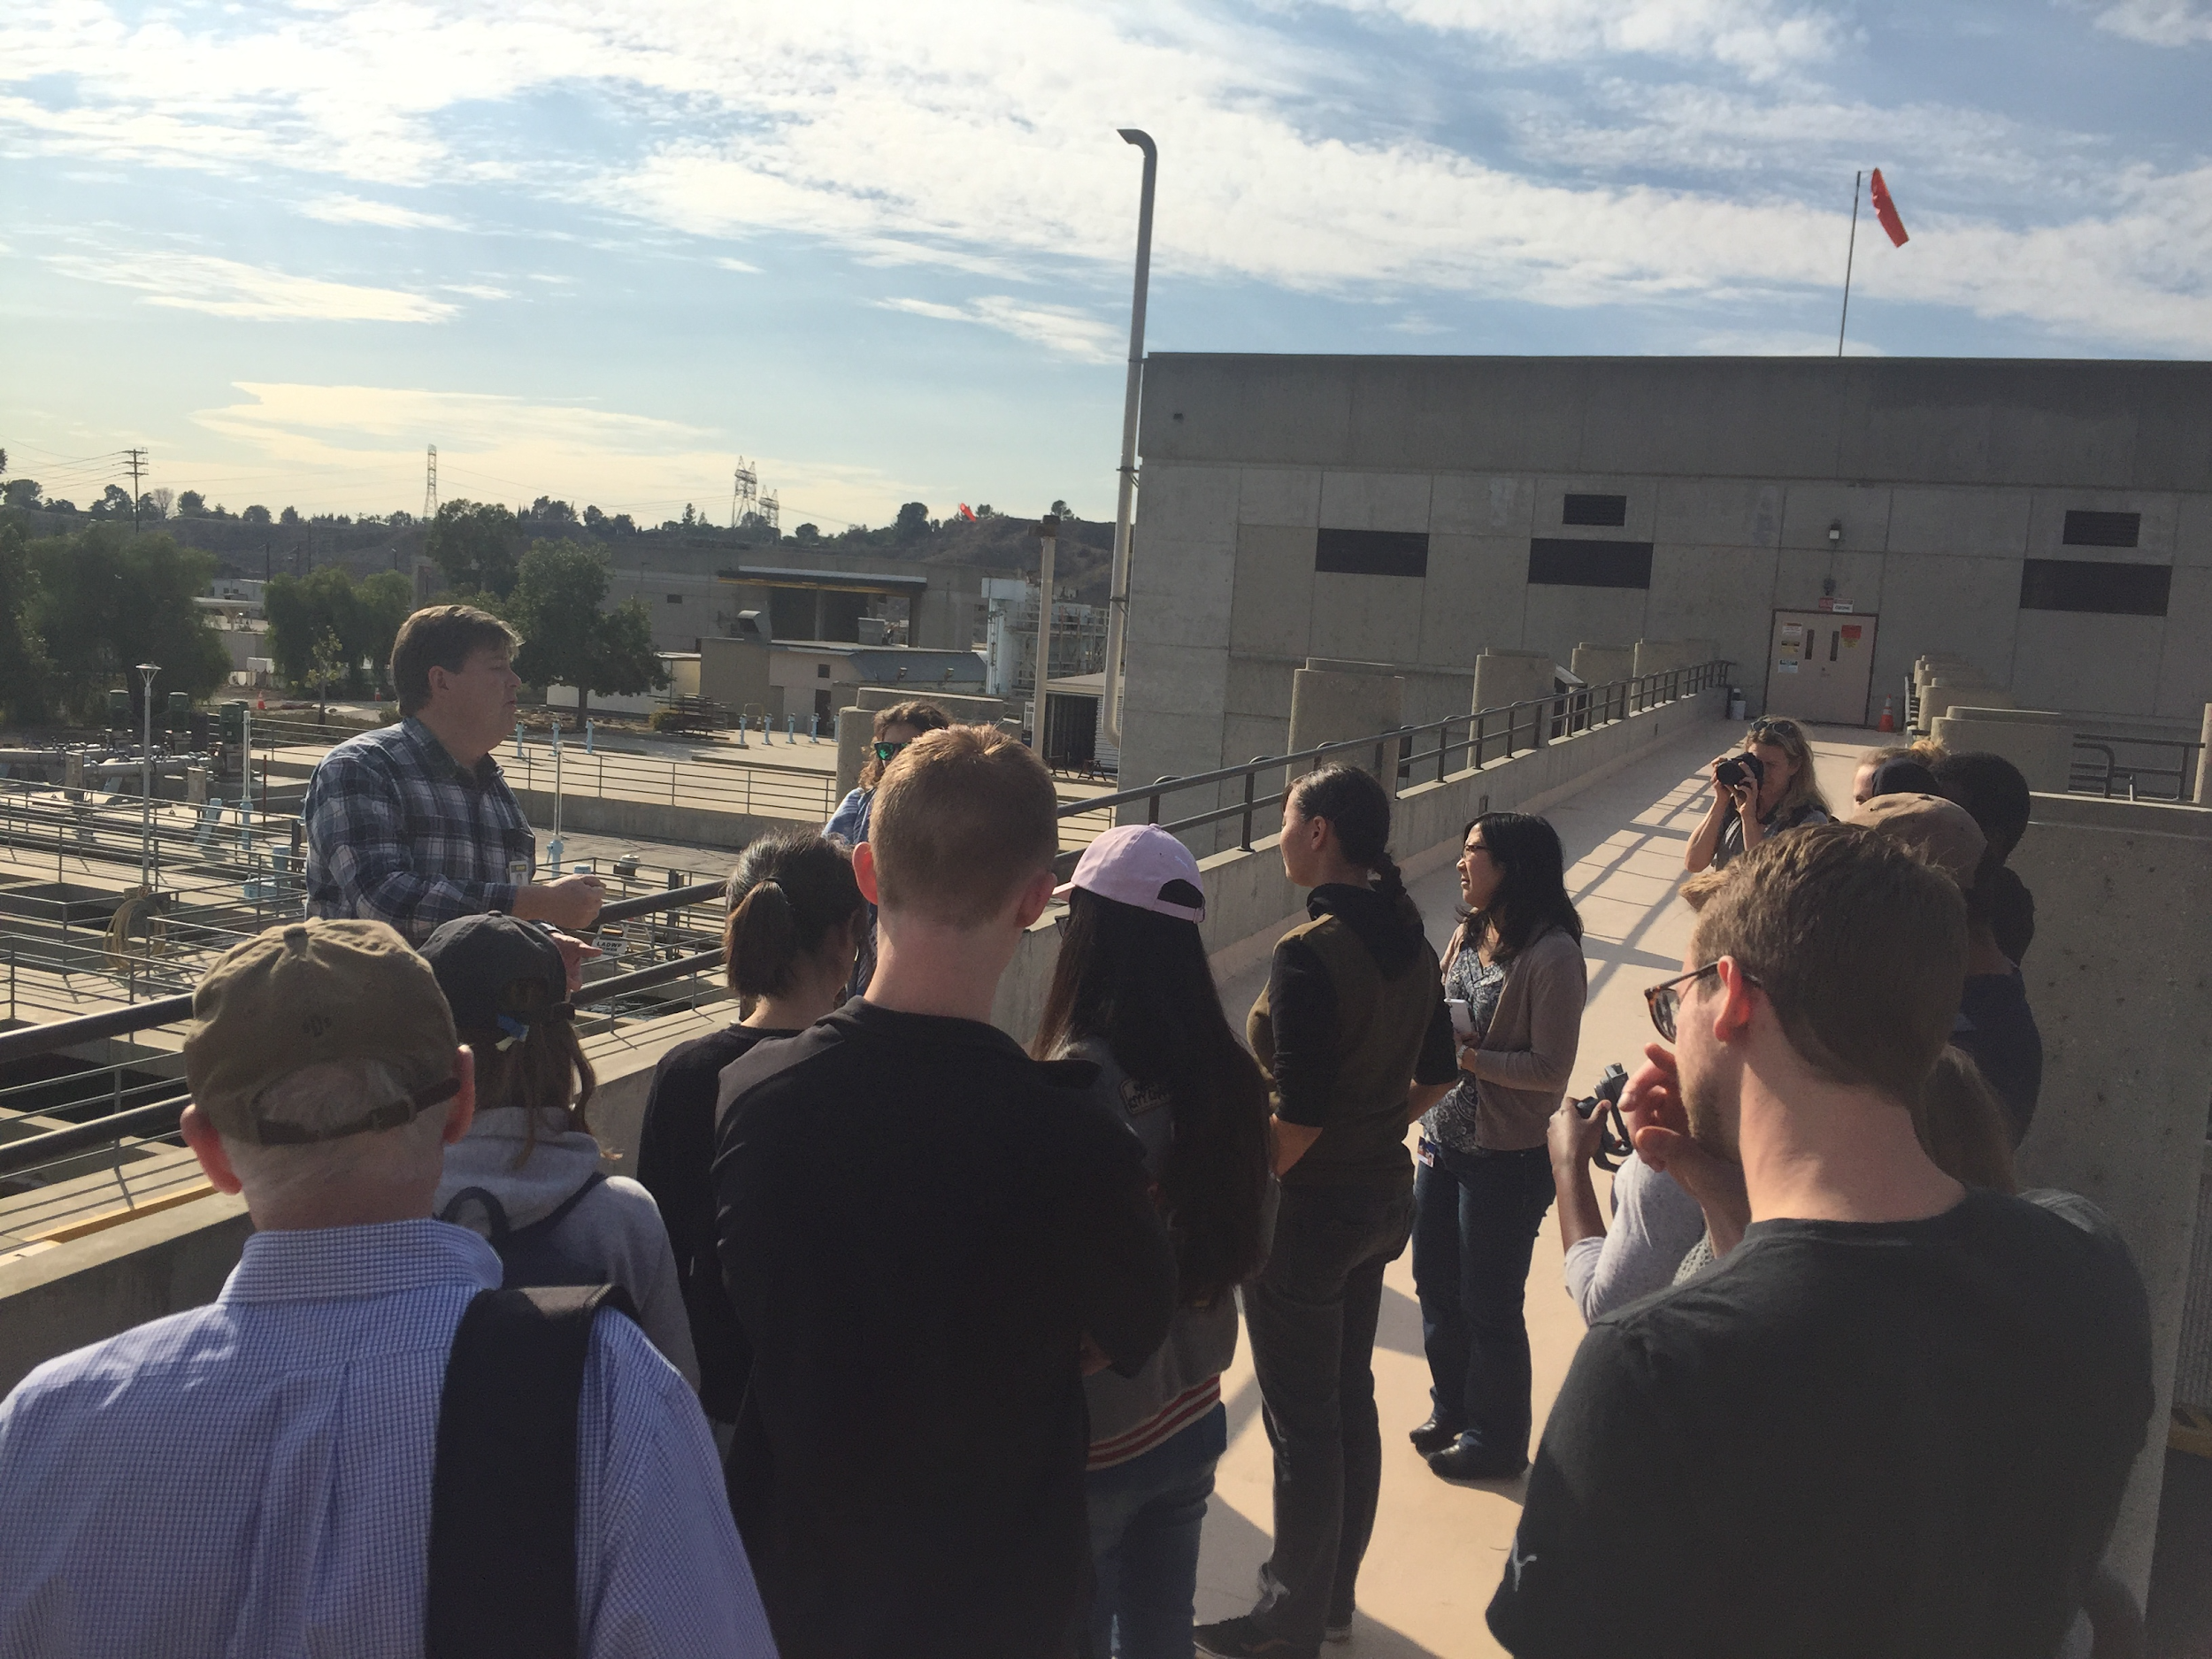 LAAFP engineers Vee and Jackie give an overview of the filtration steps at the plant.